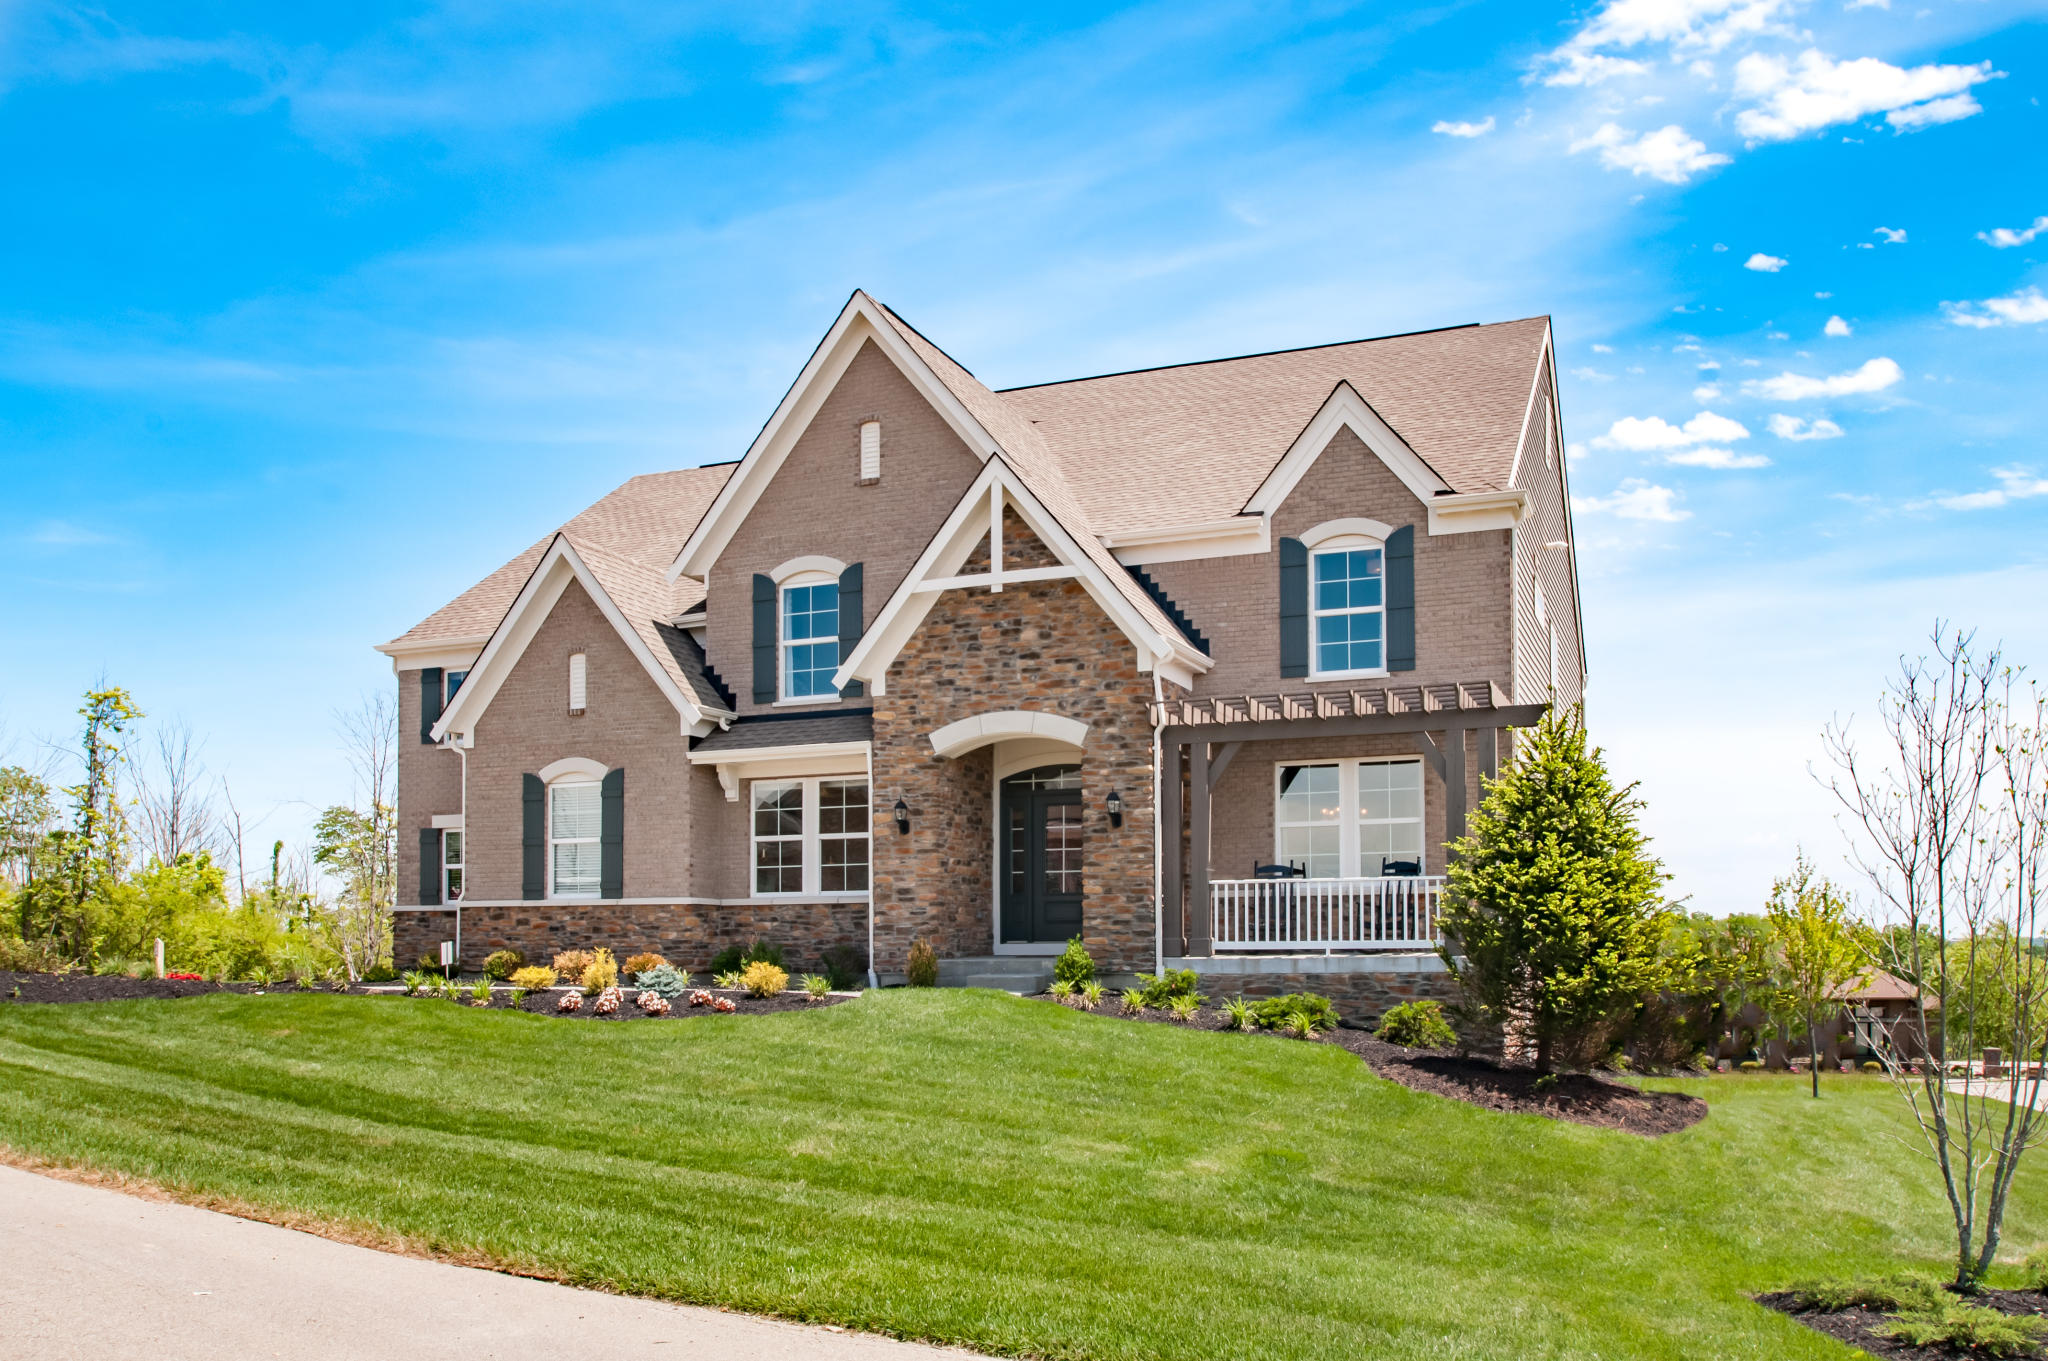 Treillage By Fischer Homes New Homes For Sale West Chester Oh